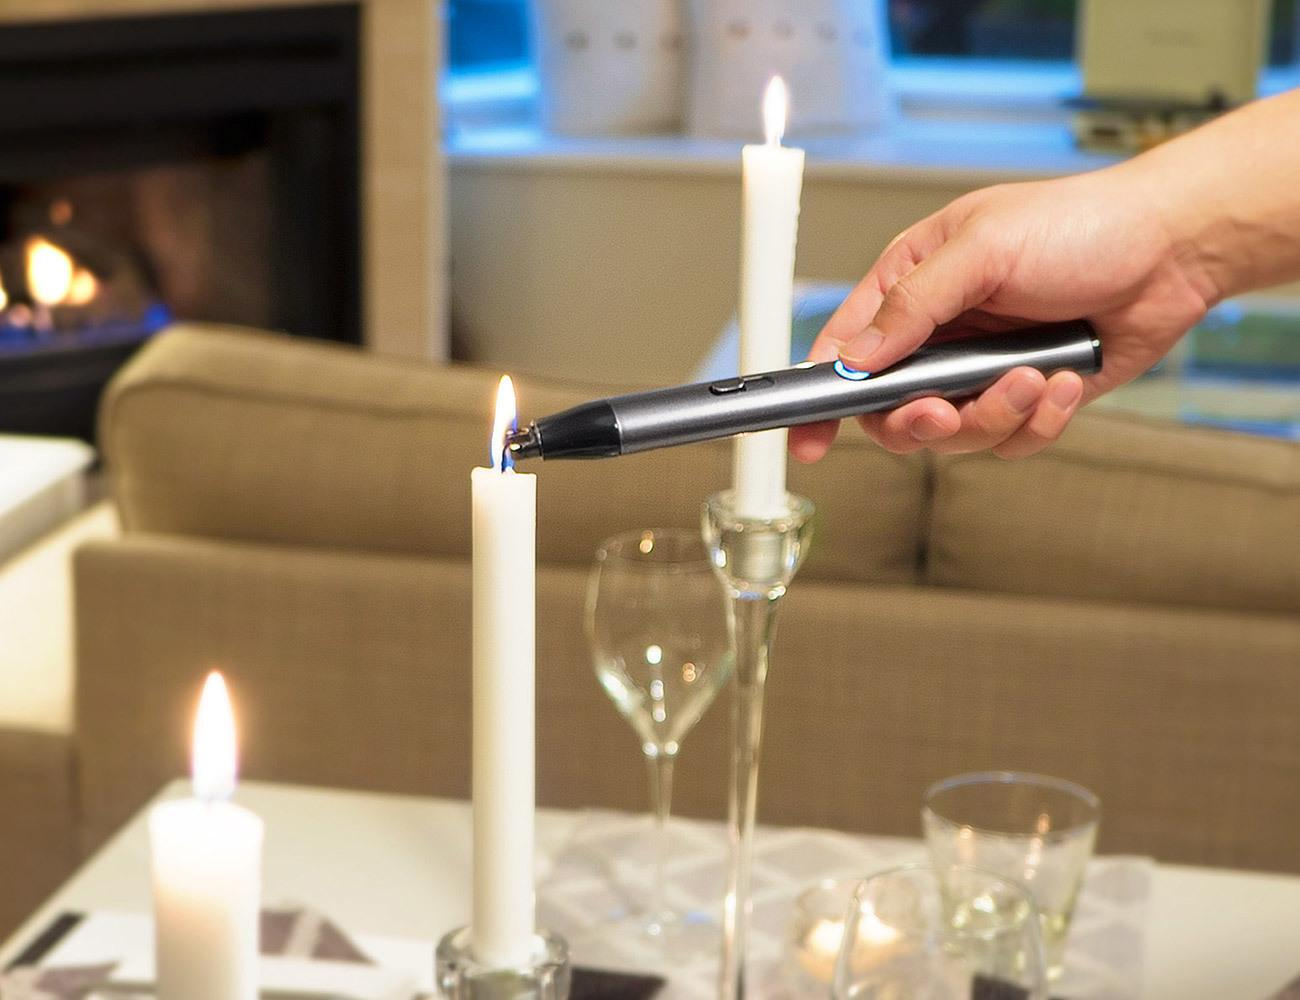 Arclighter Candle Lighter 187 Gadget Flow